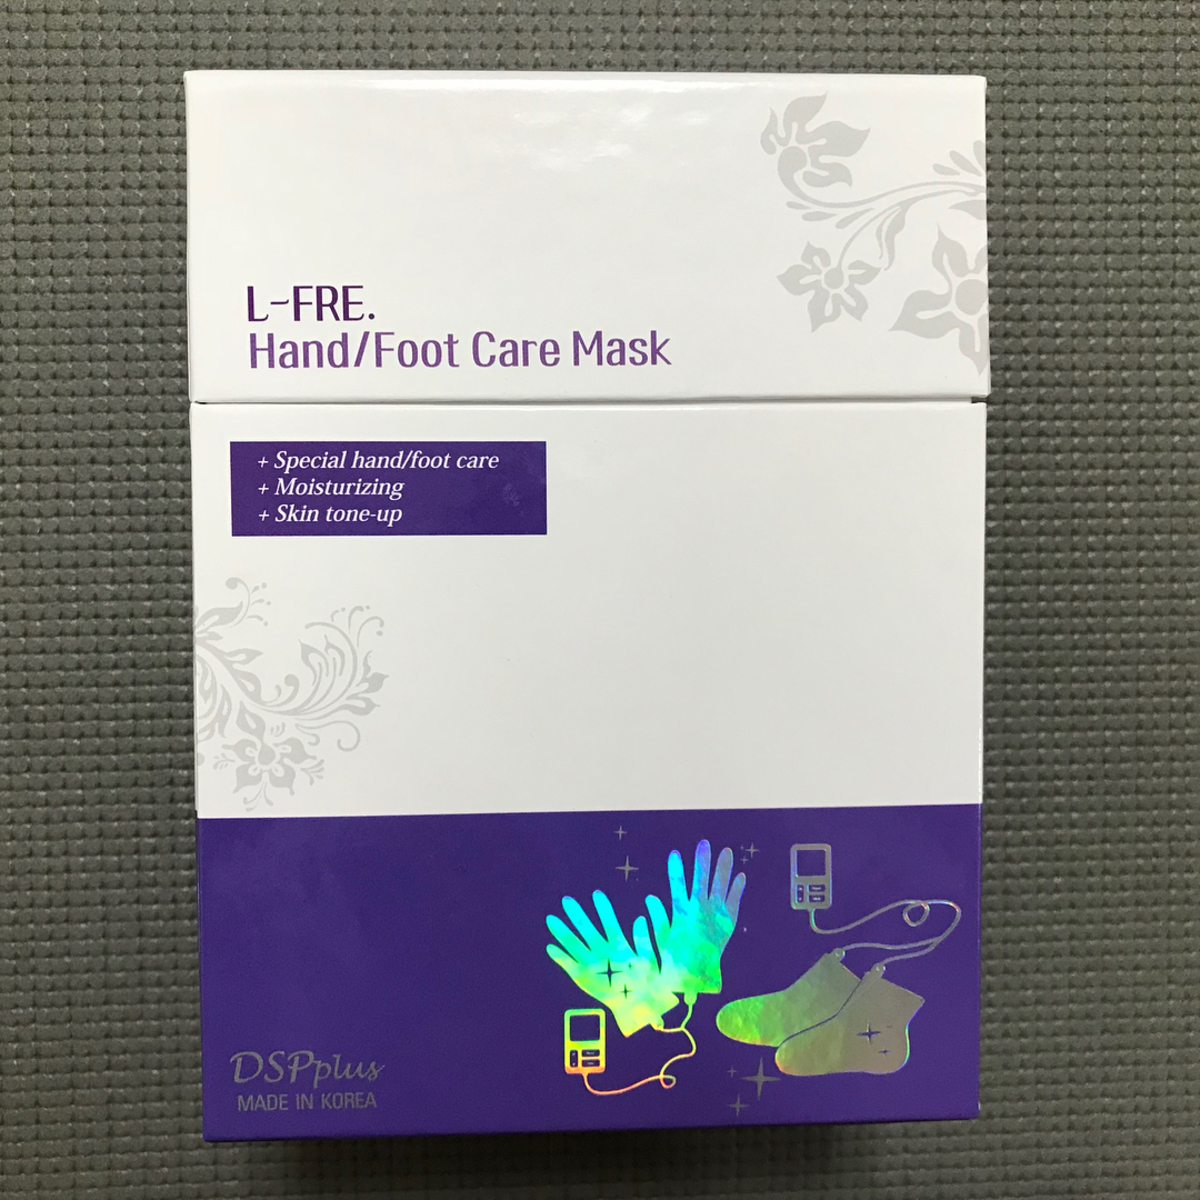 L-FRE low Frequency Hand/Foot Care Mask moisturizing skin tone up beauty device